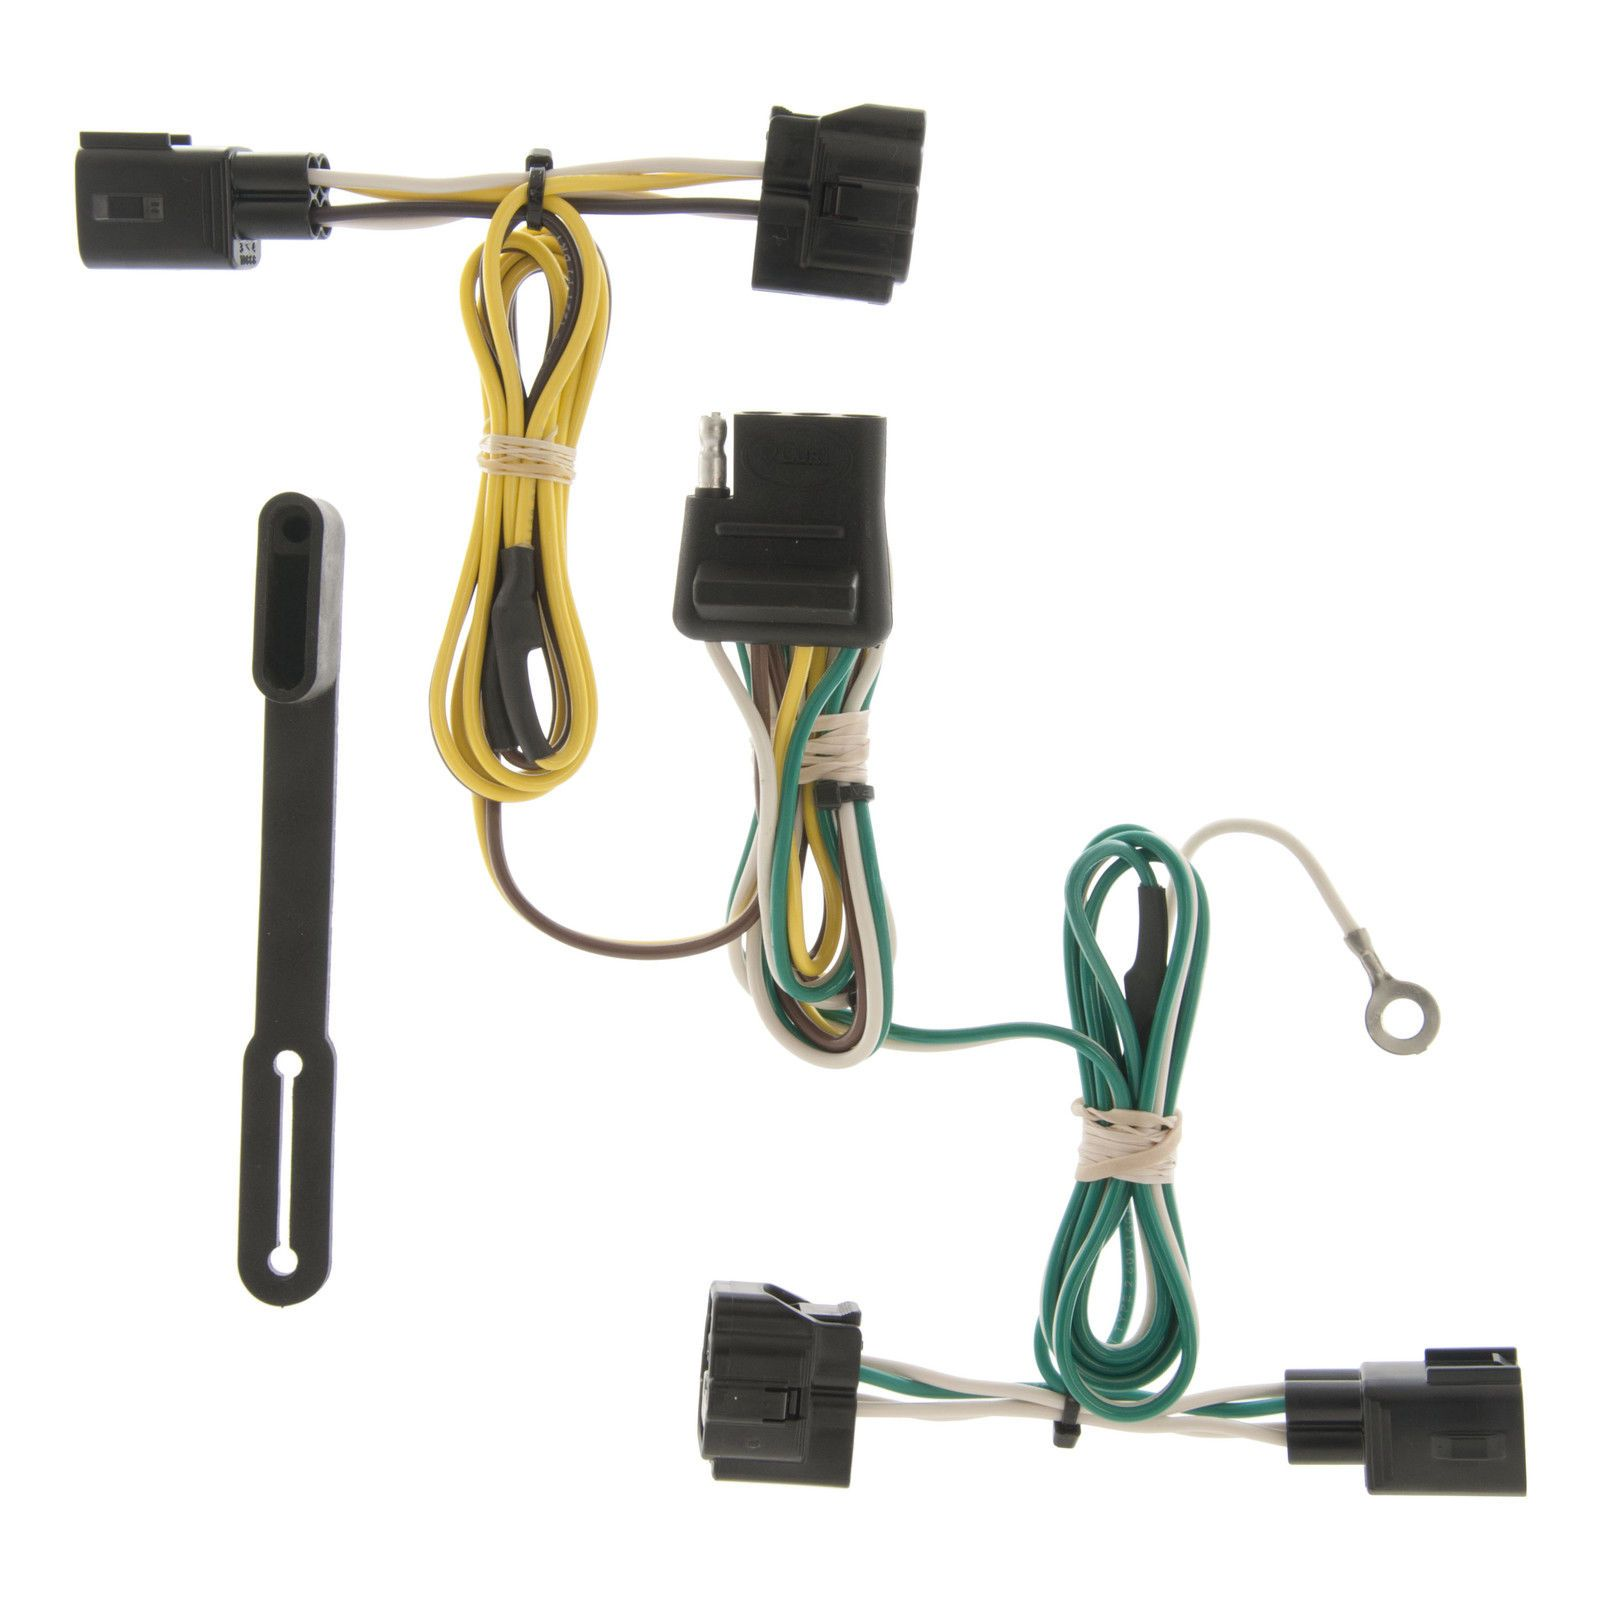 Tow Trailer Hitch Wiring Harness Kit 55inch In Length Wire Connector